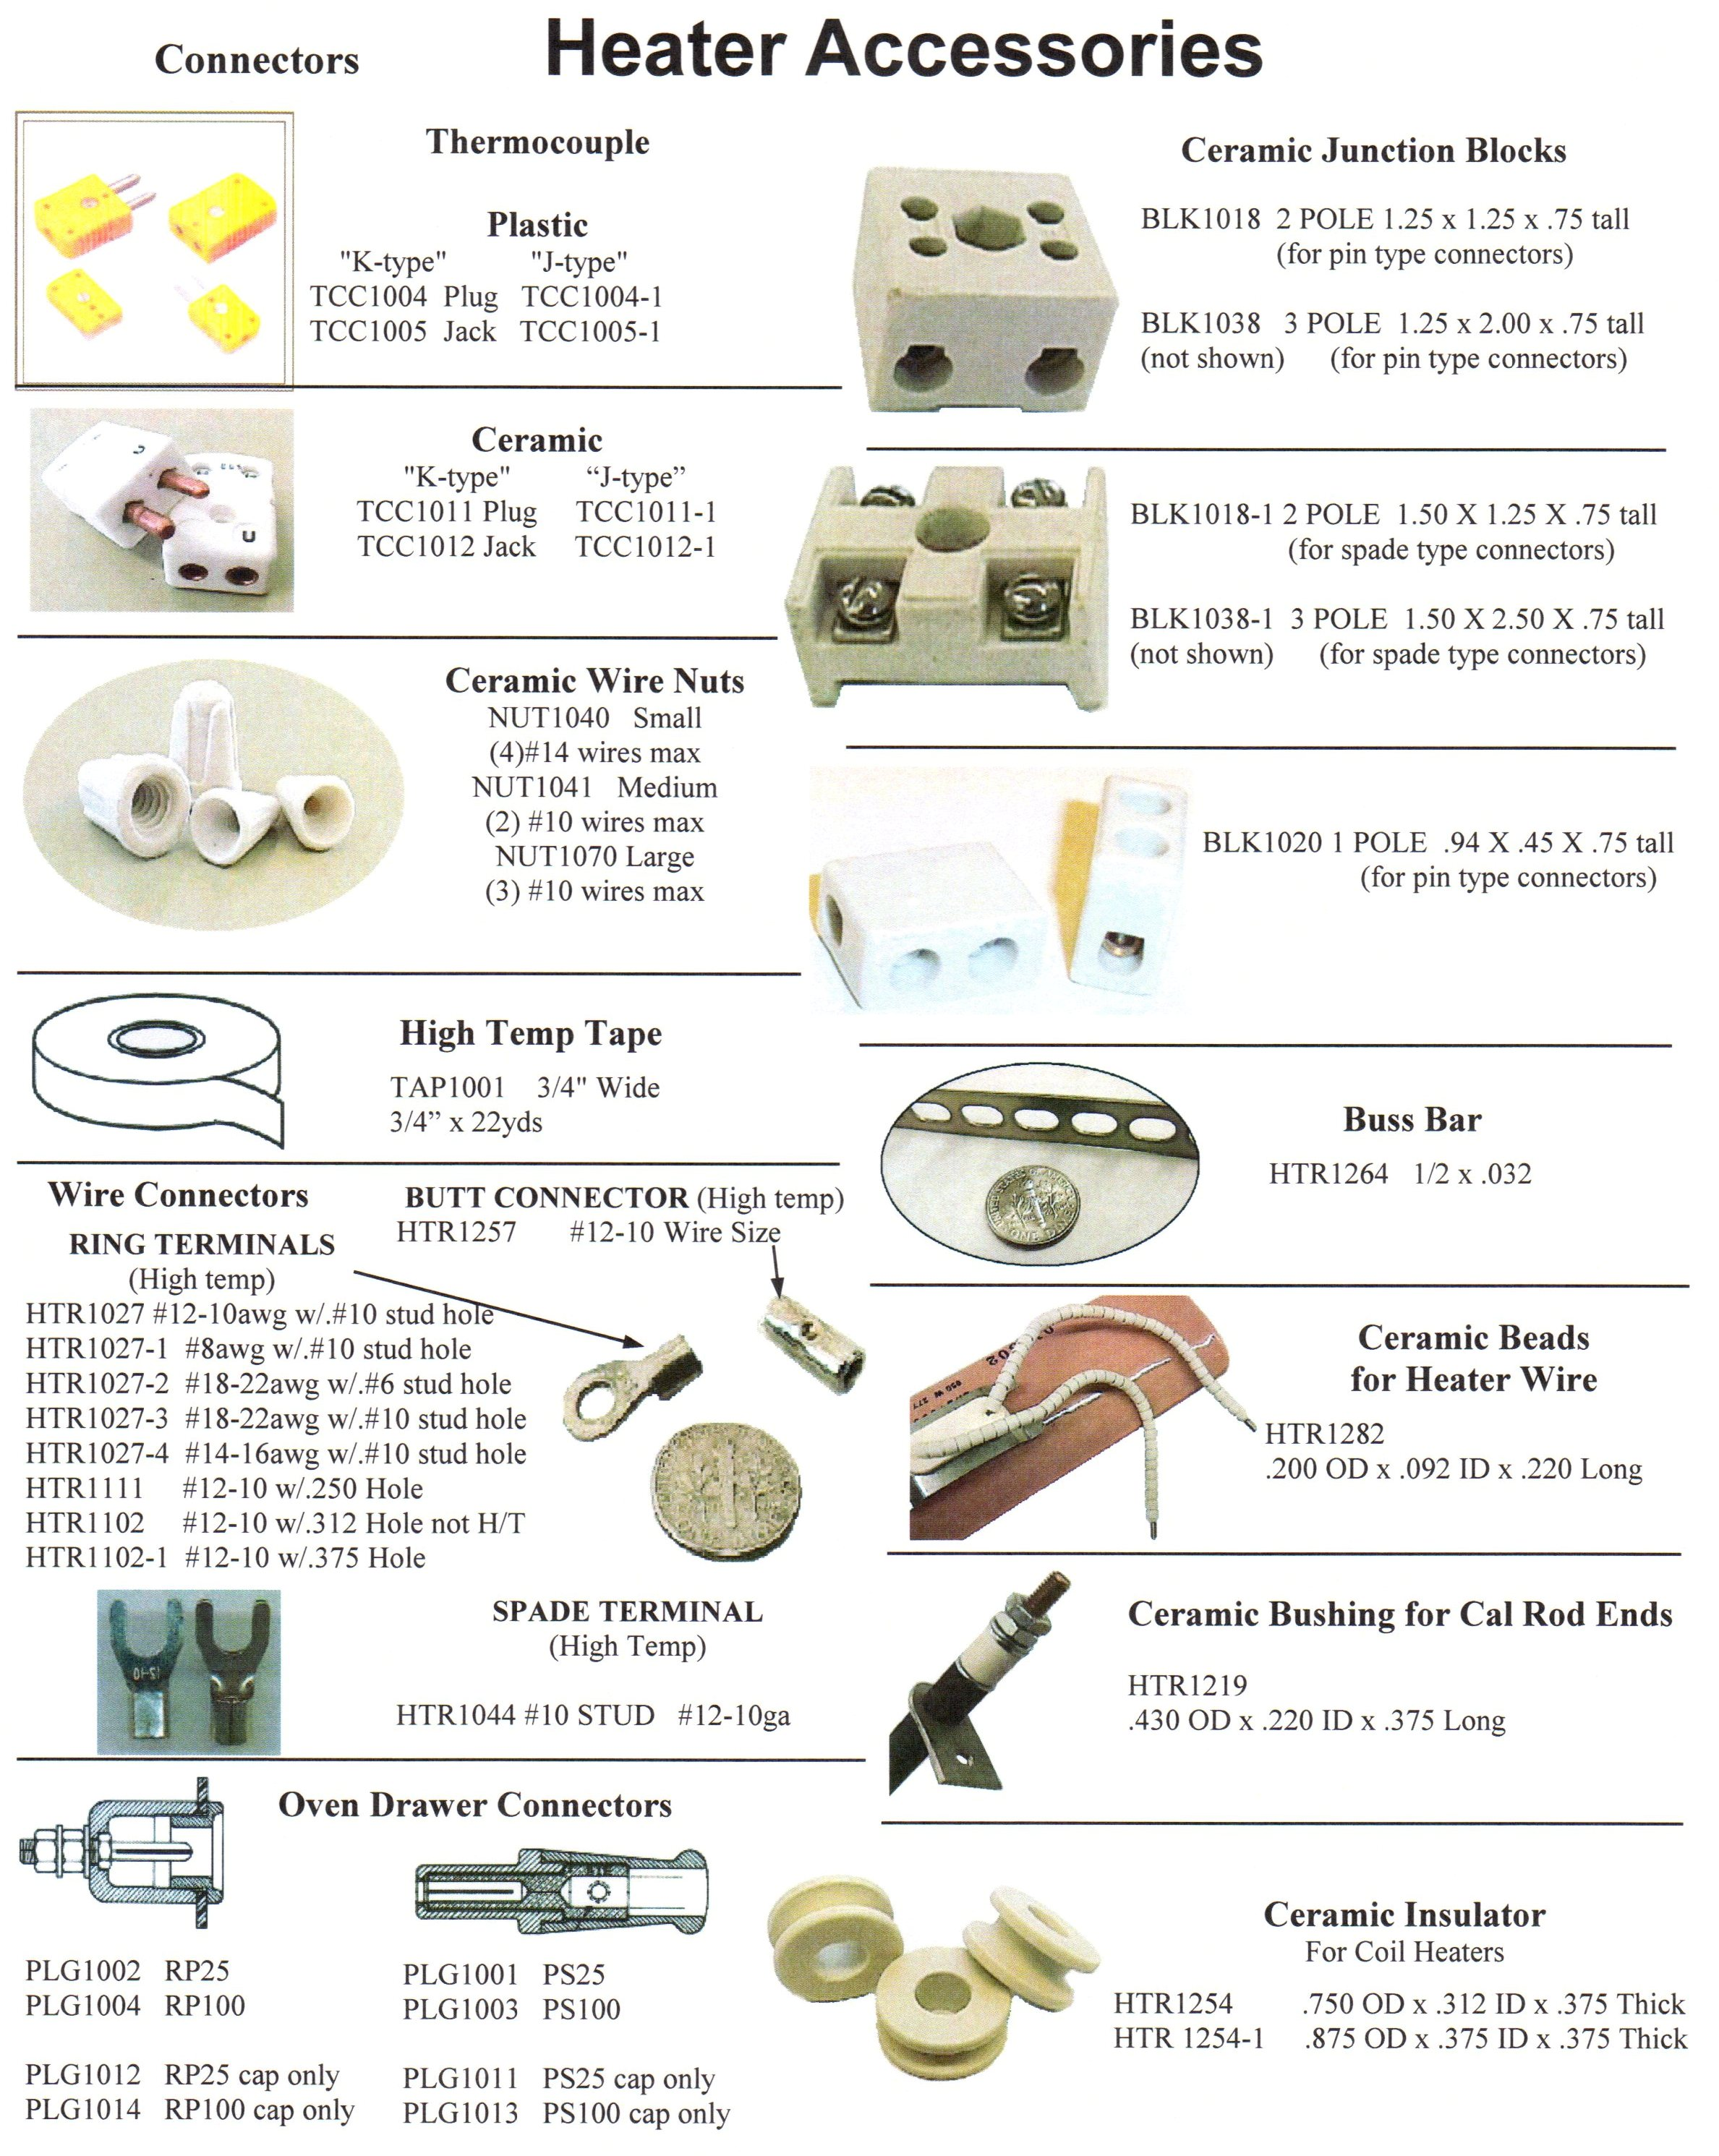 Insulators & Connectors